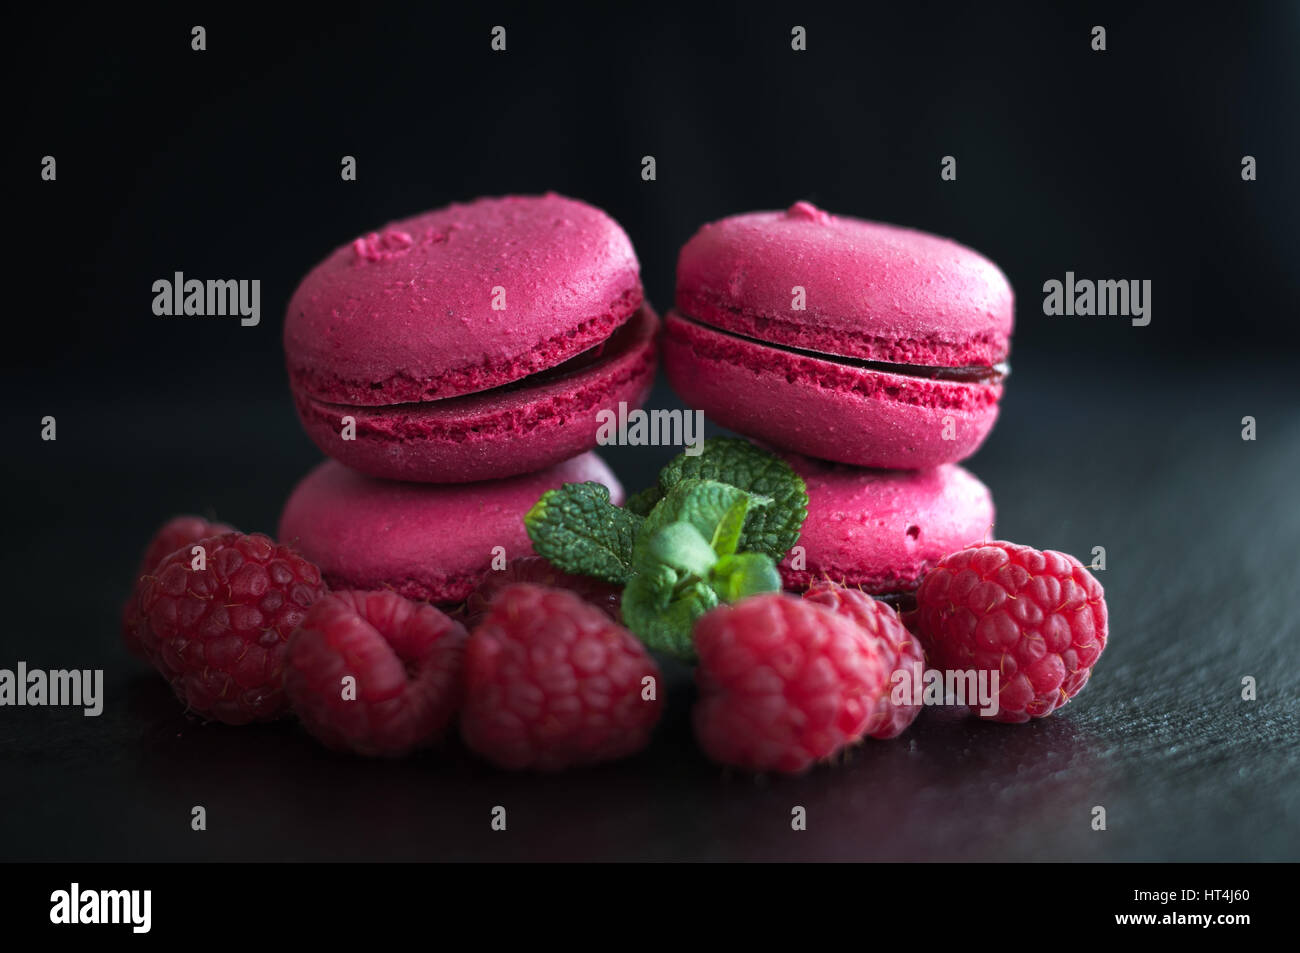 pink macaroons with raspberries on black background - Stock Image